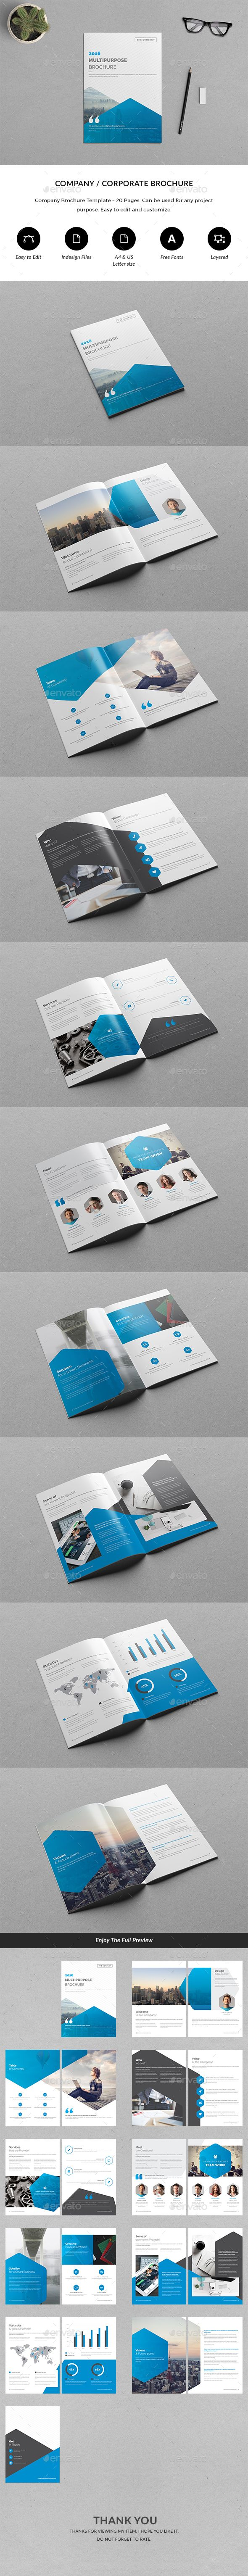 Company Brochure Template InDesign INDD. Download here: https://graphicriver.net/item/company-brochure/17475573?ref=ksioks